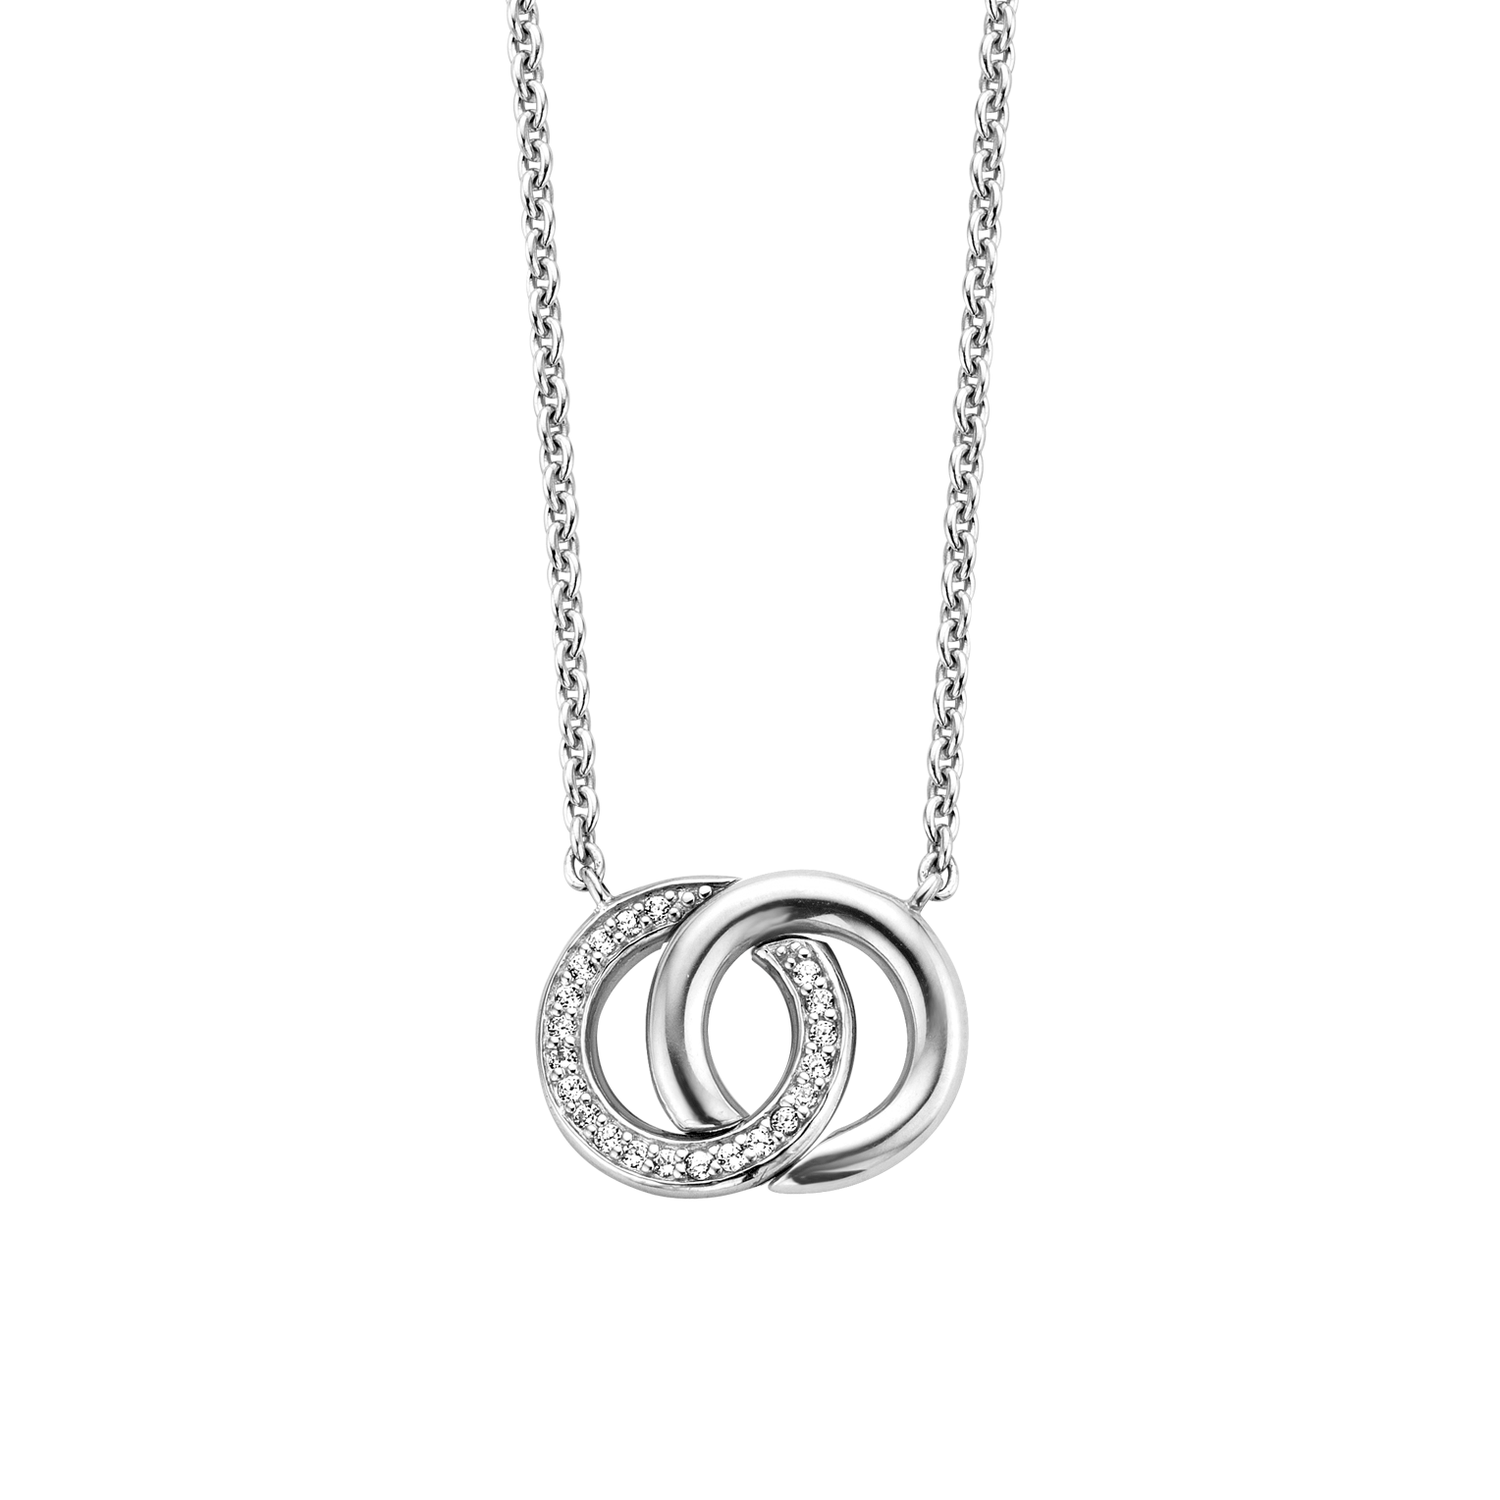 TI SENTO - Milano Necklace 3822ZI